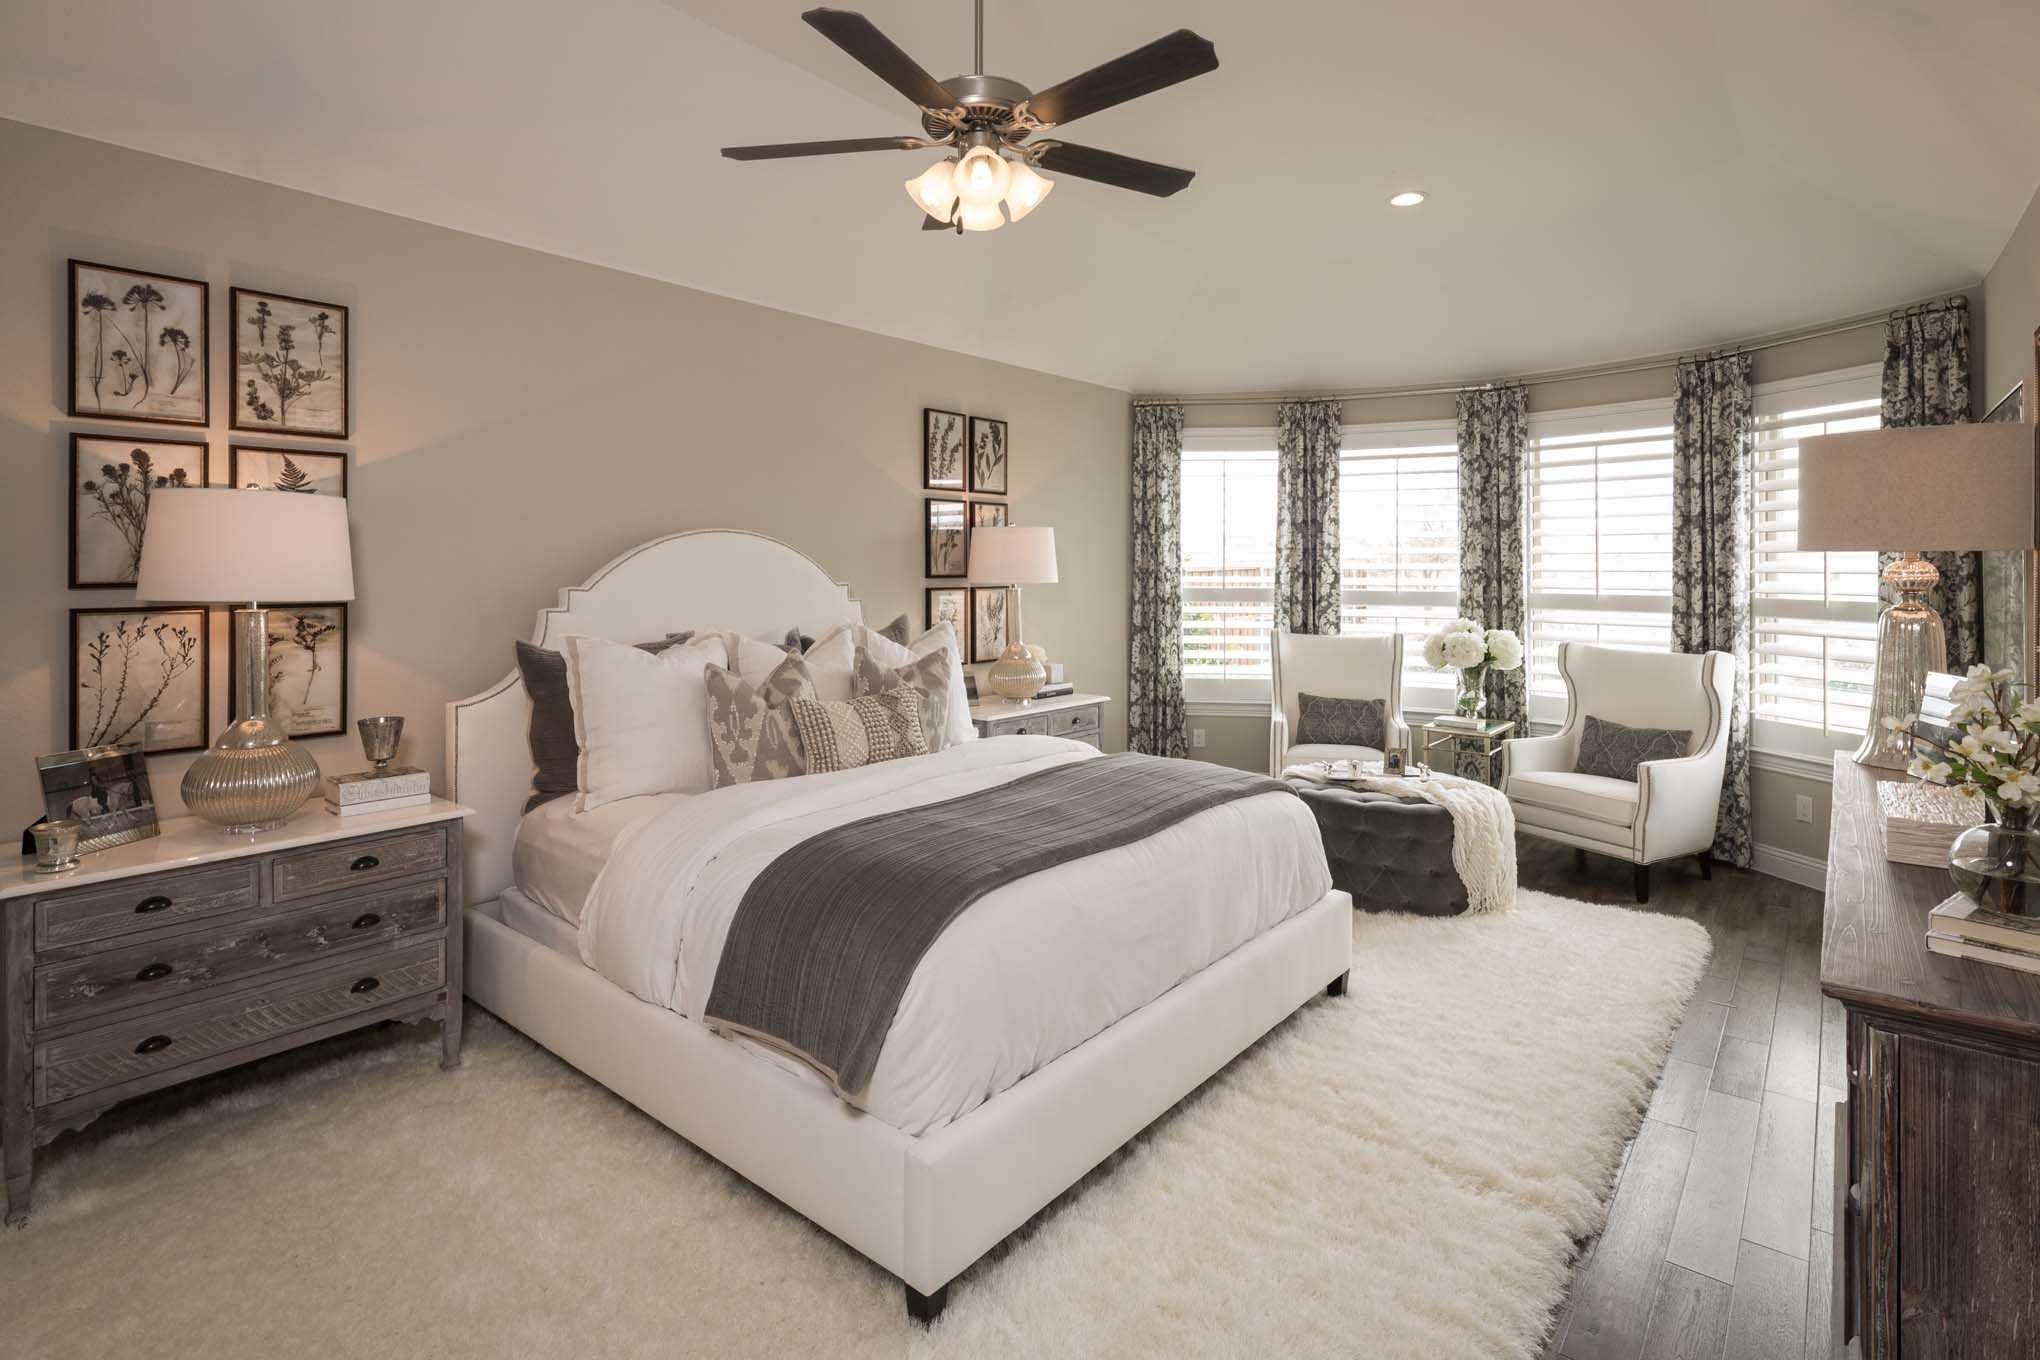 Highland Homes plan 262 Model Home in Dallas / Fort Worth